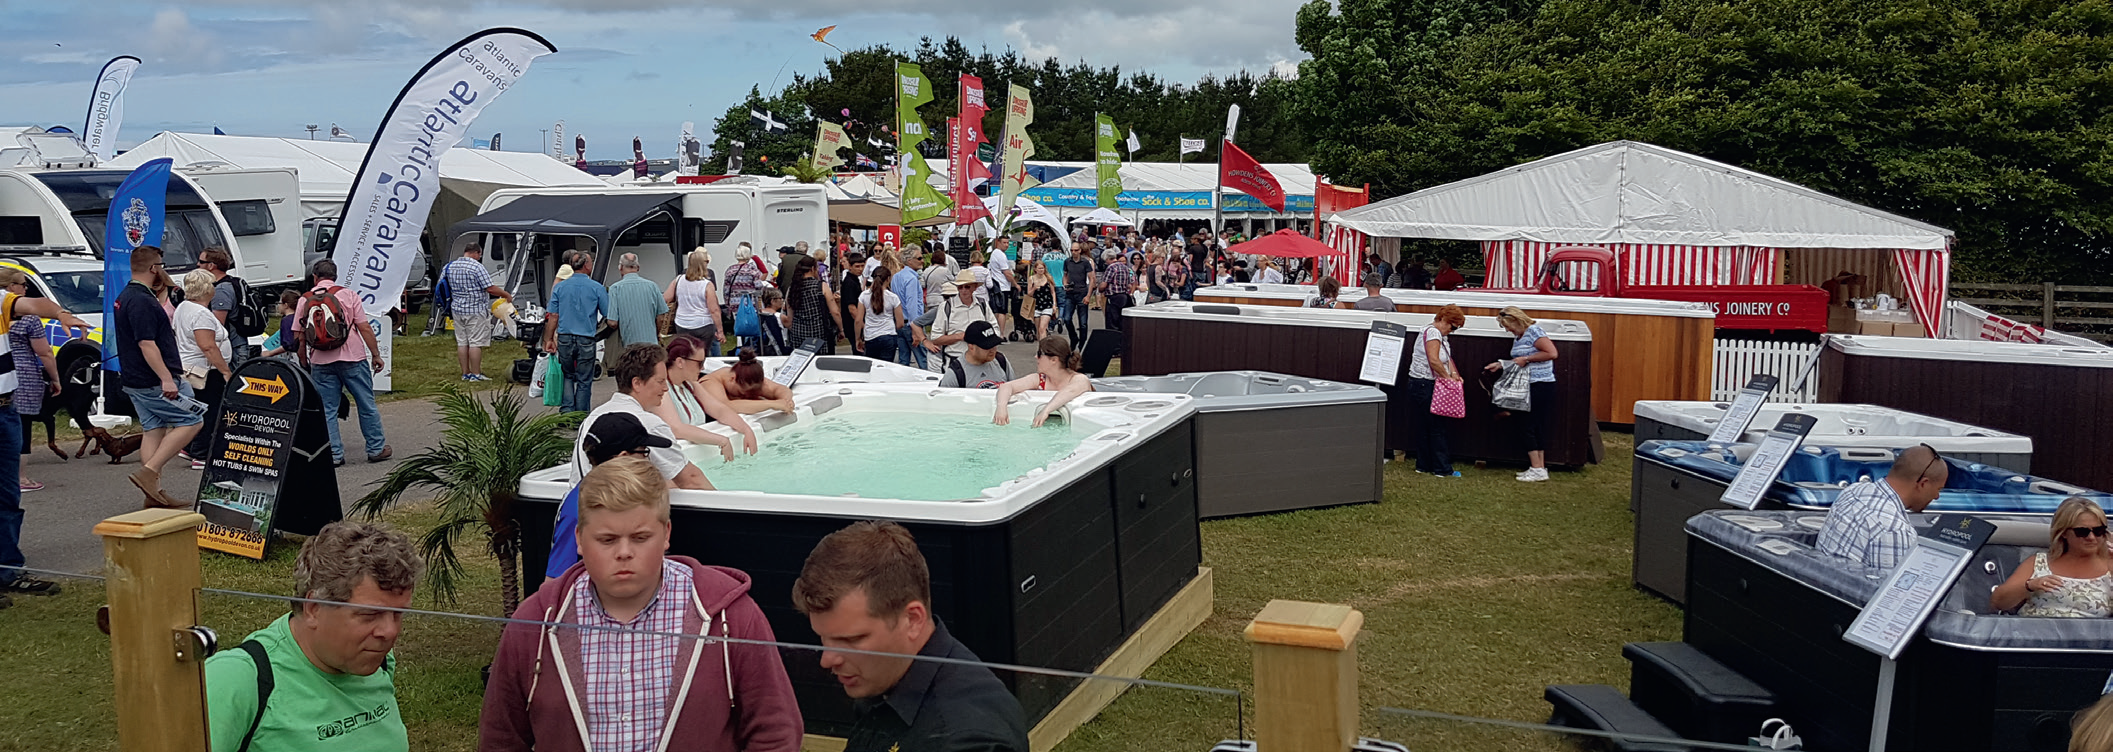 Many companies reported record-breaking sales figures and exceeded targets at this summer's outdoor shows, including Hydropool pictured above at The Royal Cornwall Show.